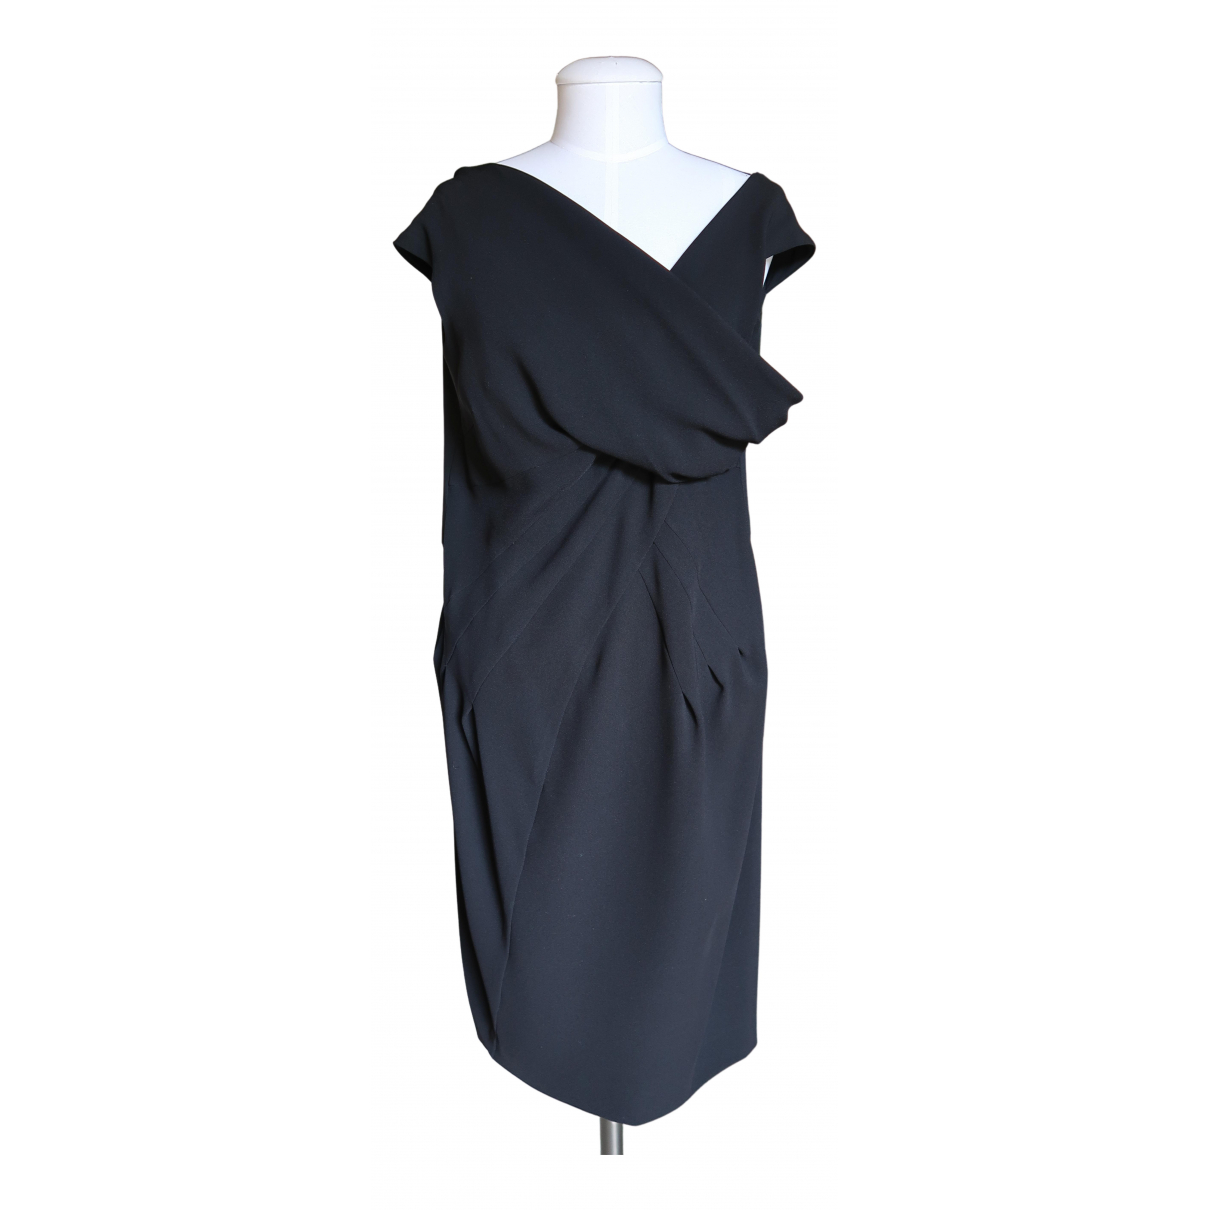 Donna Karan N Black Dress for Women